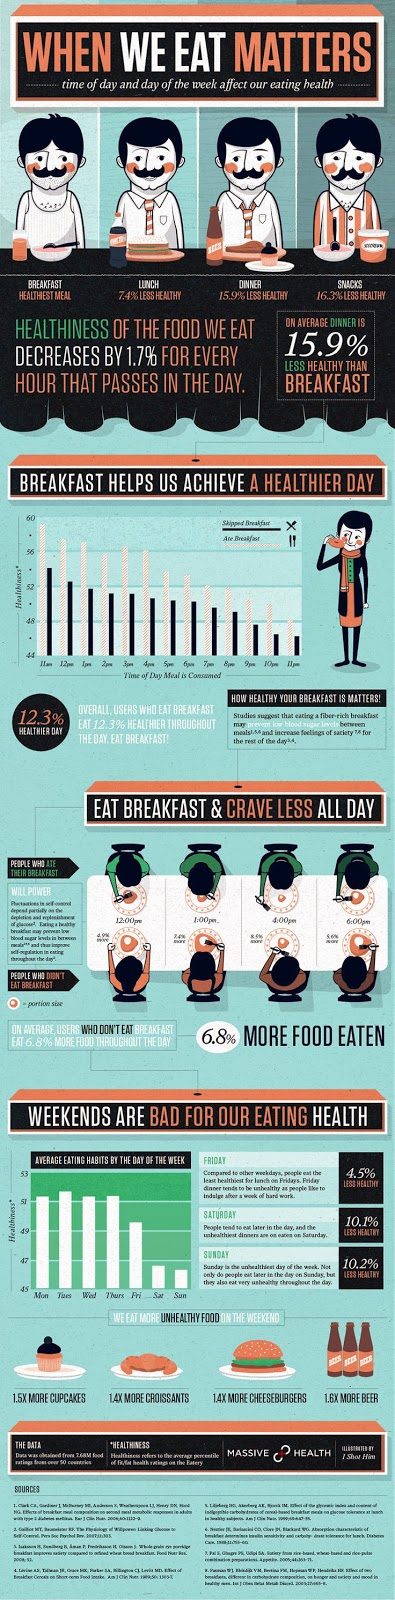 hover_share weight loss - when we eat matters